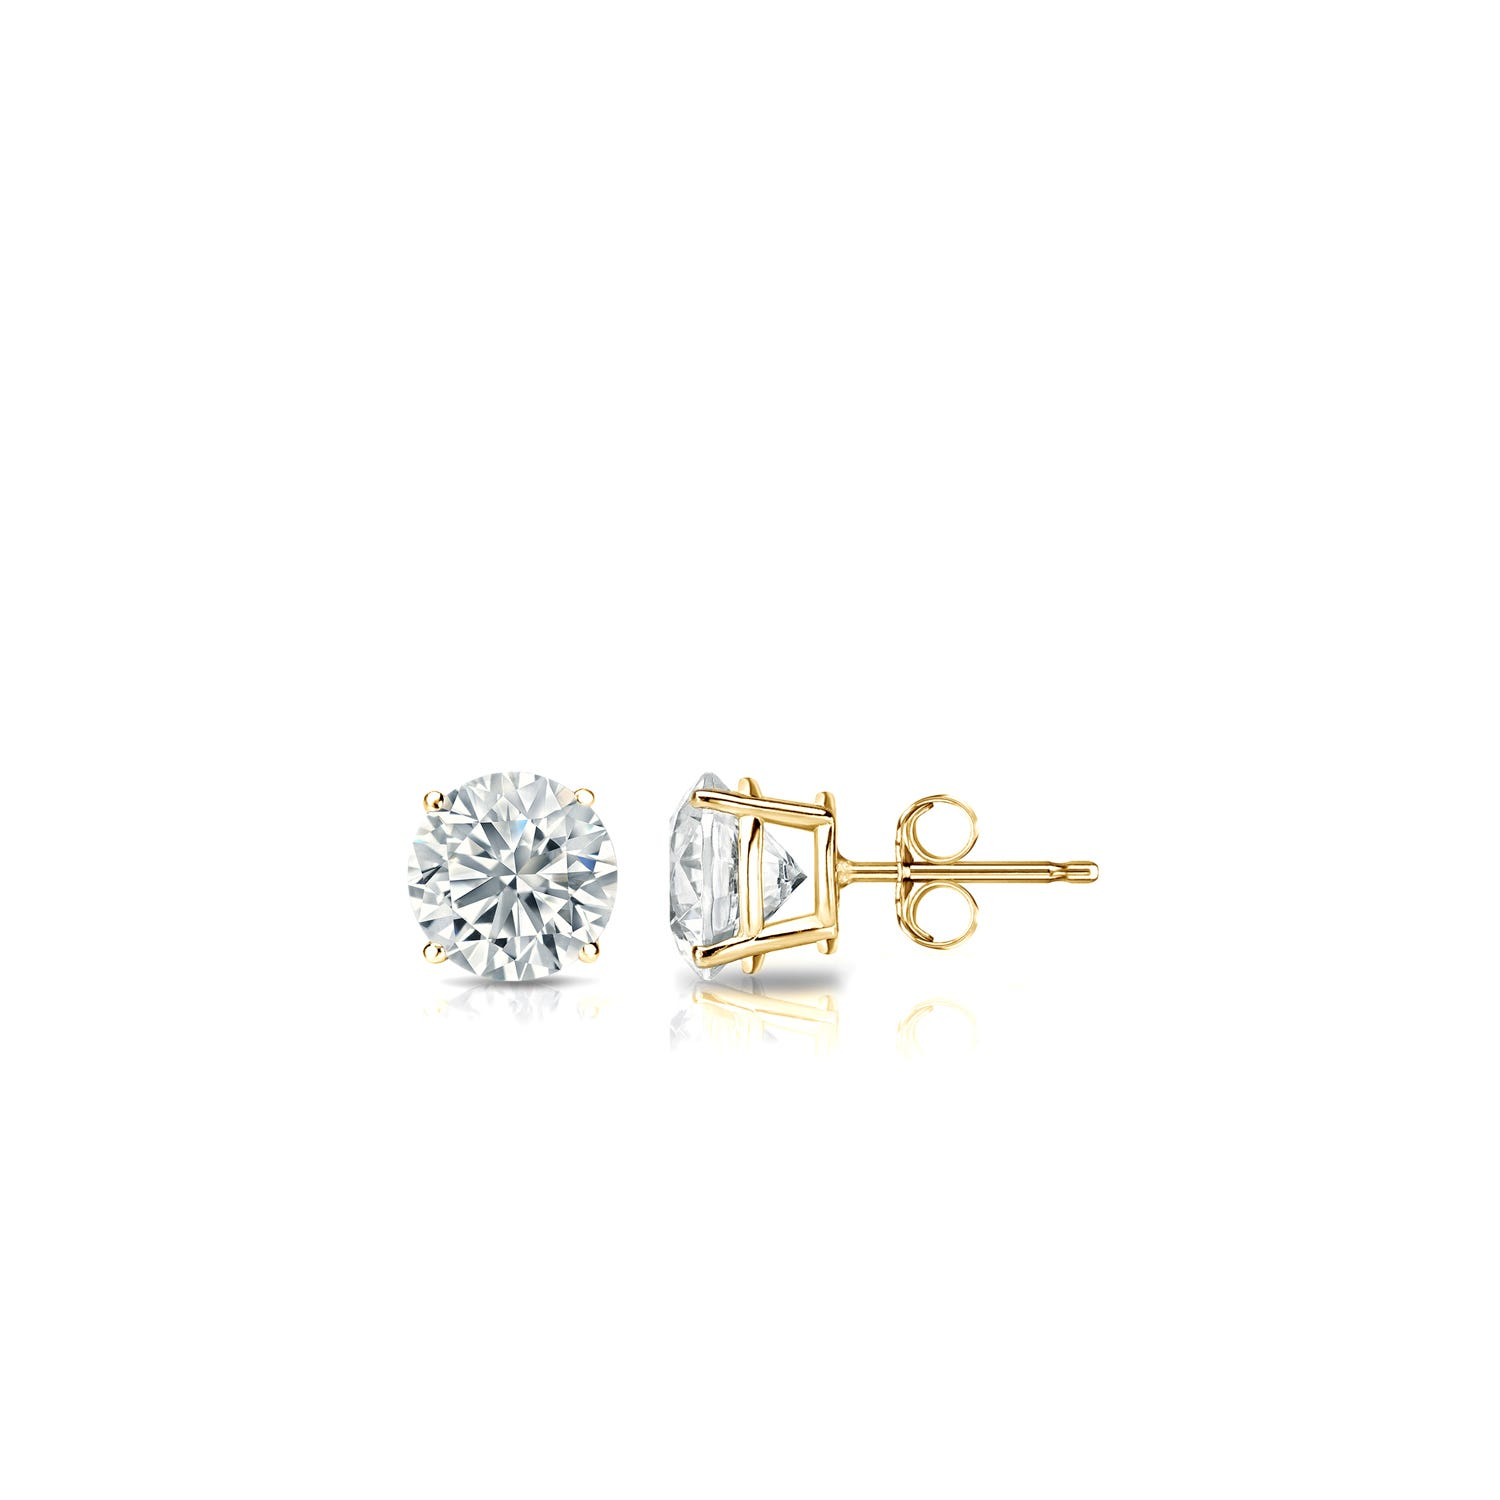 Diamond 1/5ctw. Round Solitaire Stud Earrings (I-J, SI1) 18k Yellow Gold